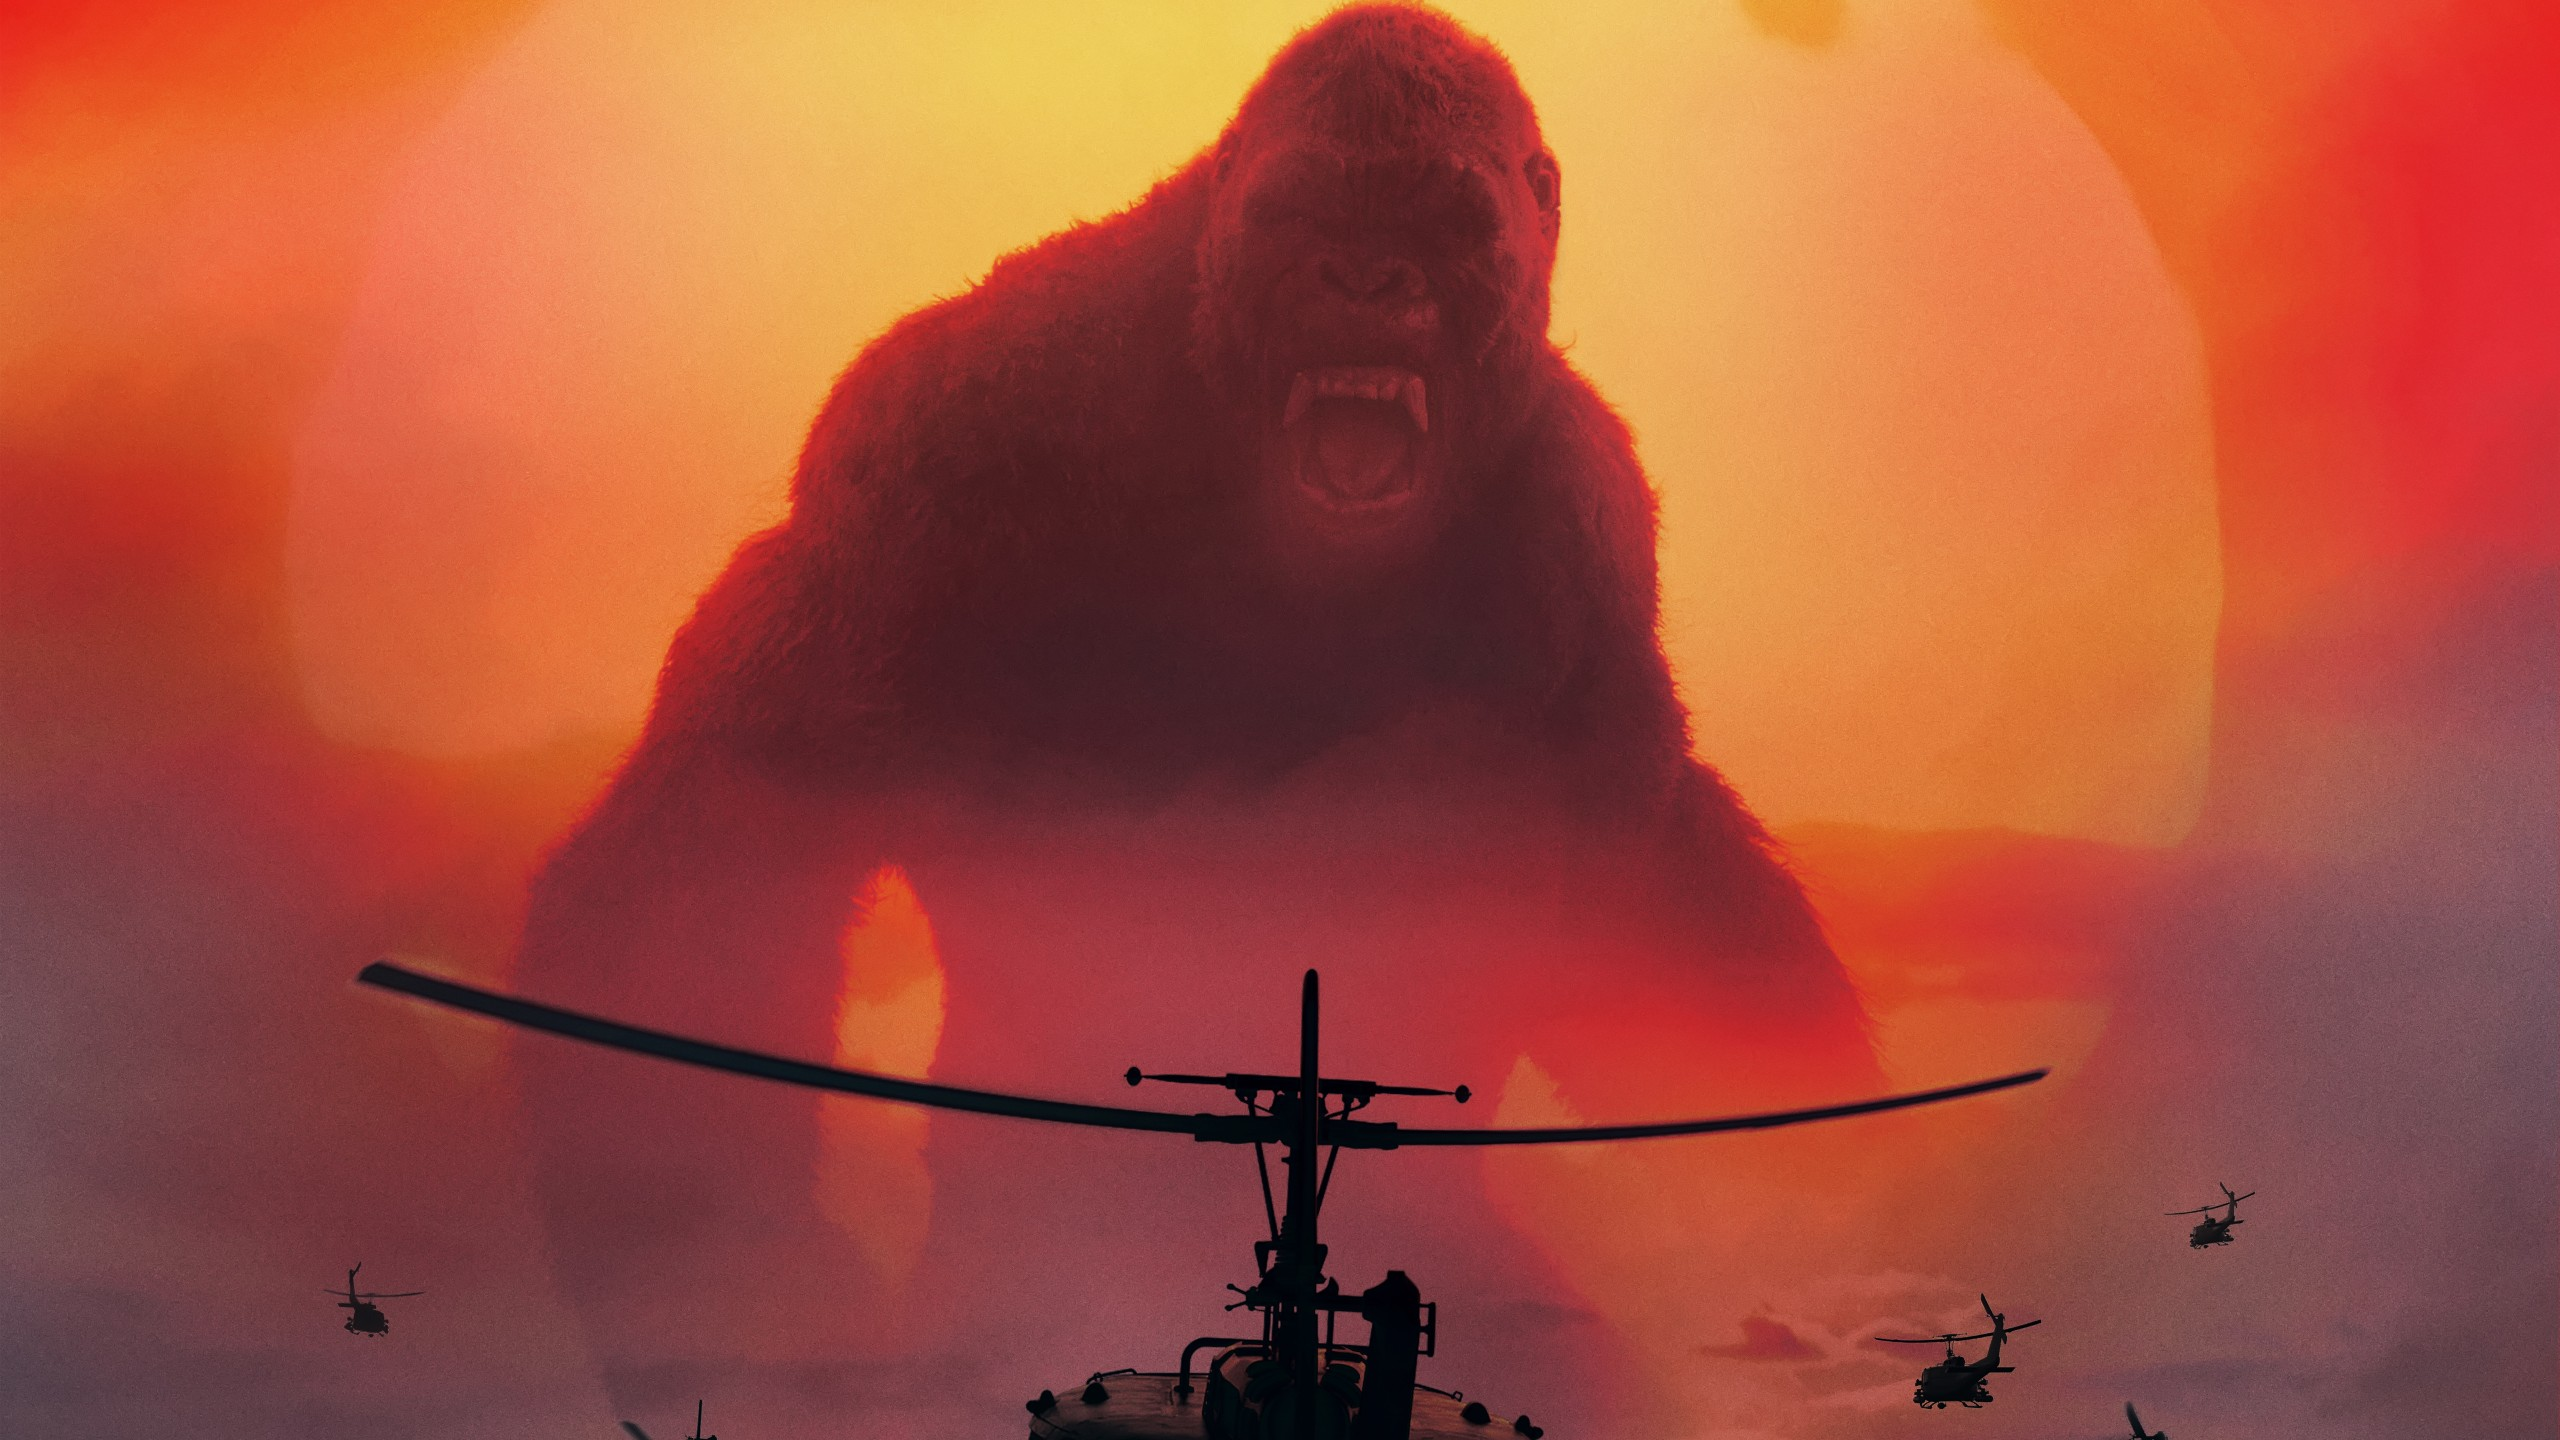 Iphone 6s Wallpaper Hd Quotes Kong Skull Island 2017 Movie 4k Wallpapers Hd Wallpapers